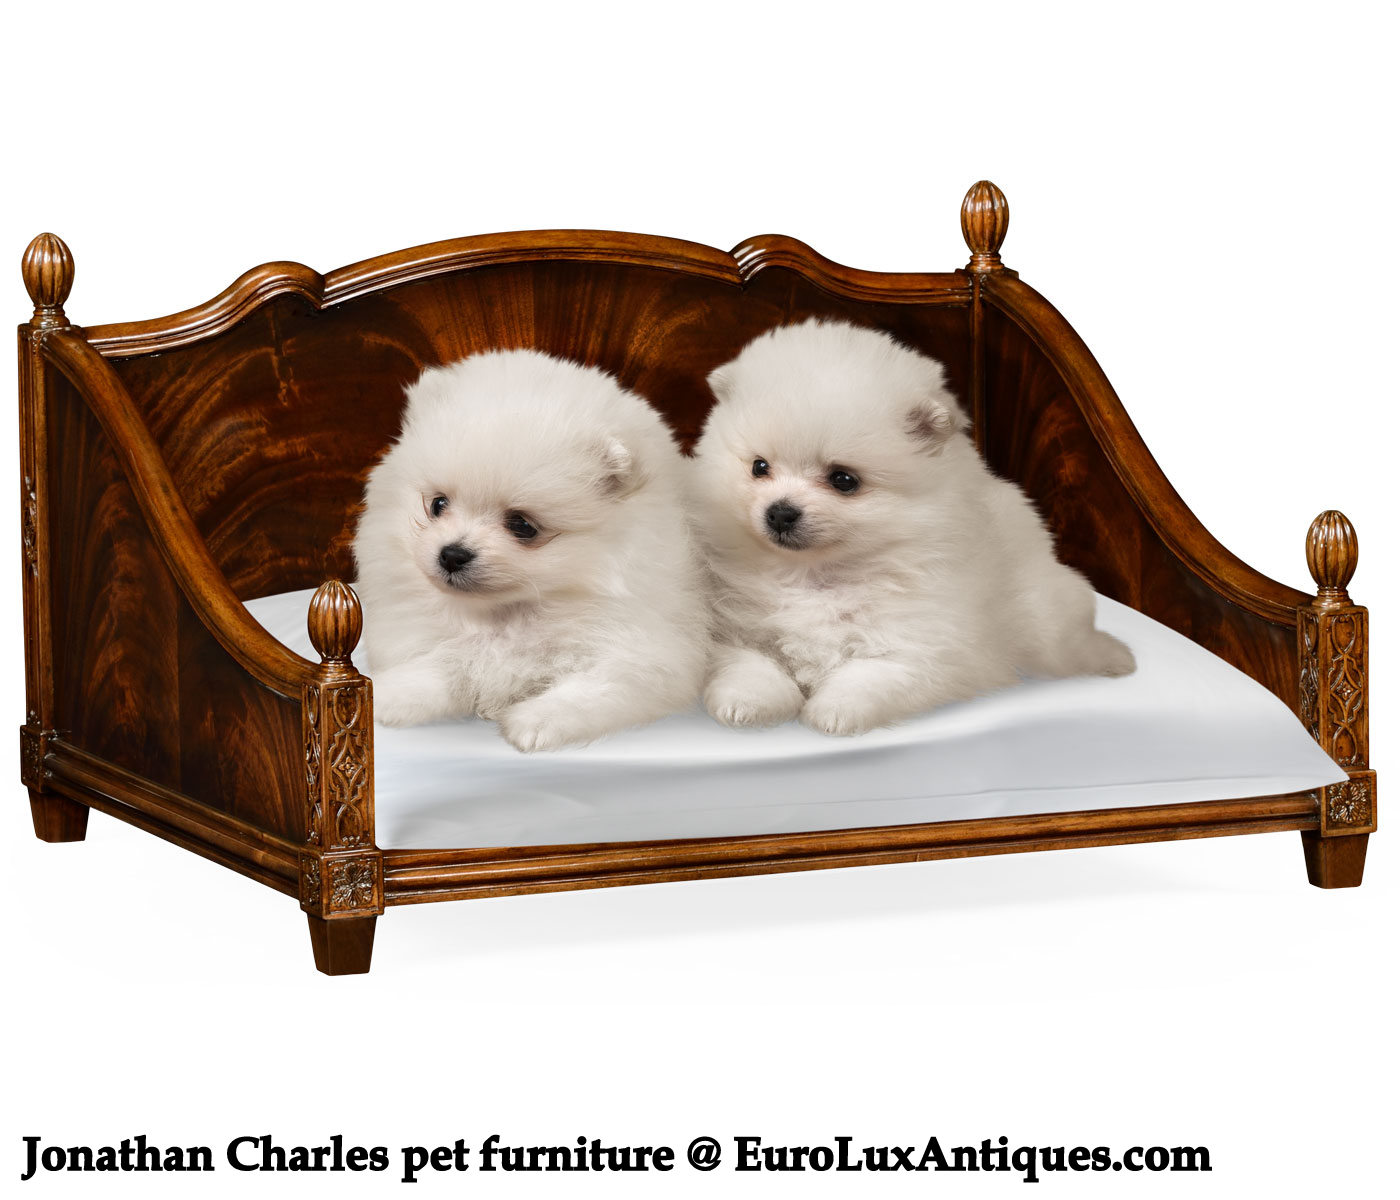 Jonathan Charles pet furniture